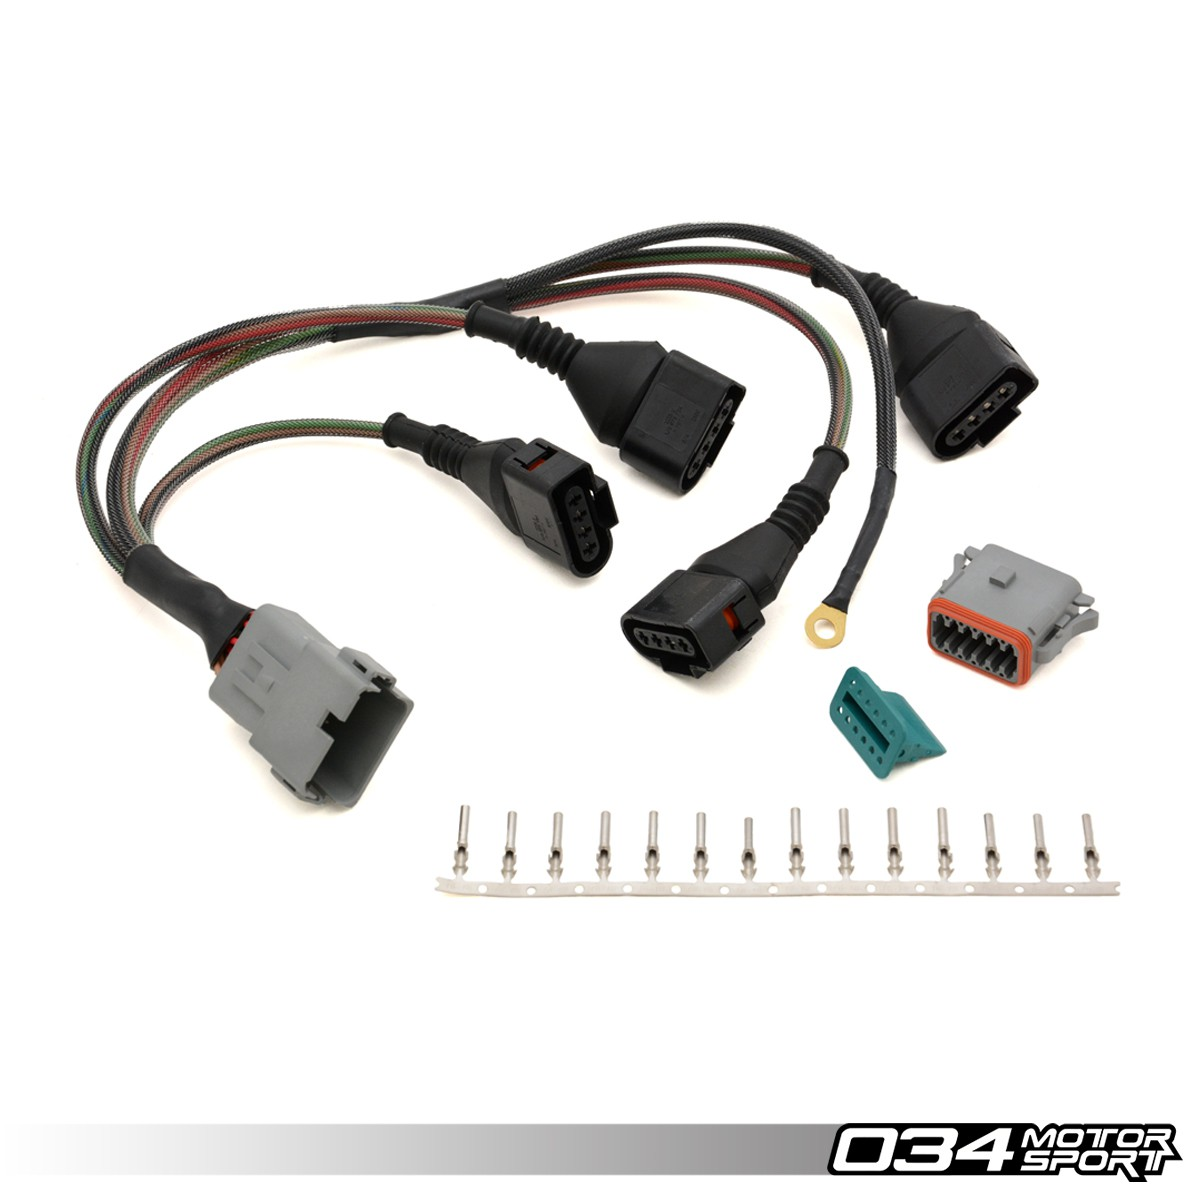 repair update harness audi volkswagen 18t with 4 wire coils 034motorsport 034 701 0004 2 repair update harness, audi volkswagen 1 8t with 4 wire coils VW 1.8T Engine at n-0.co